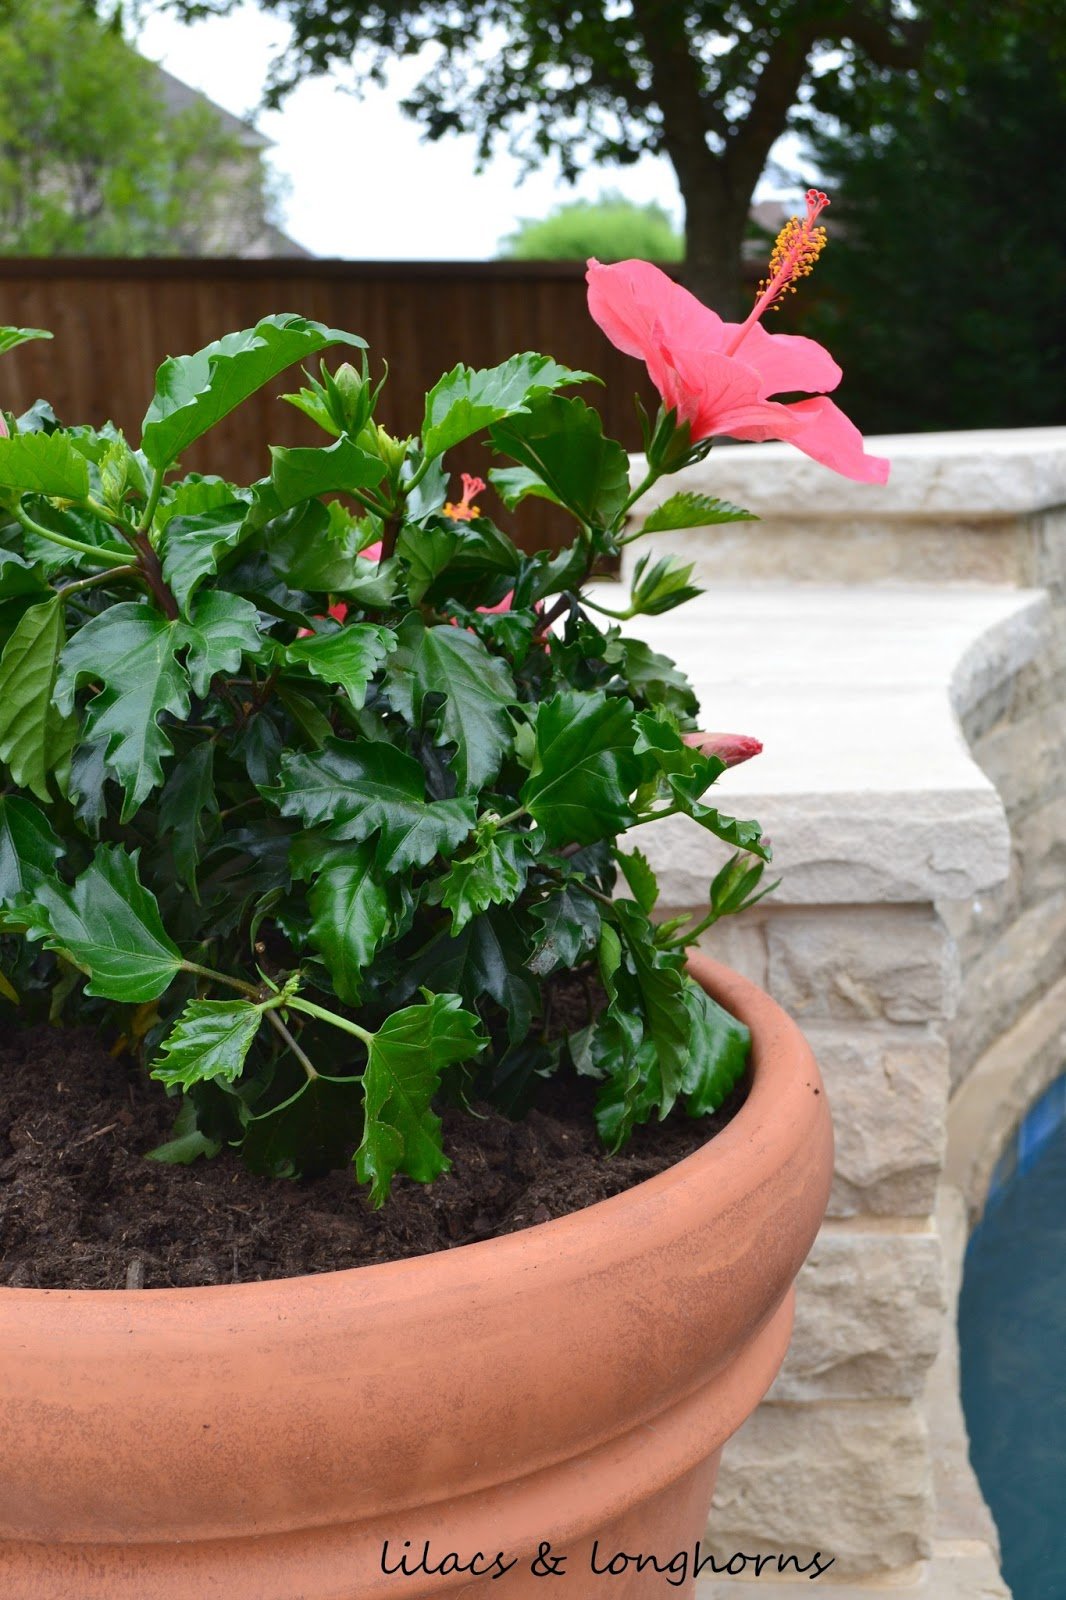 Big Pot Plants How To Plant In Large Pots Without Spending A Fortune